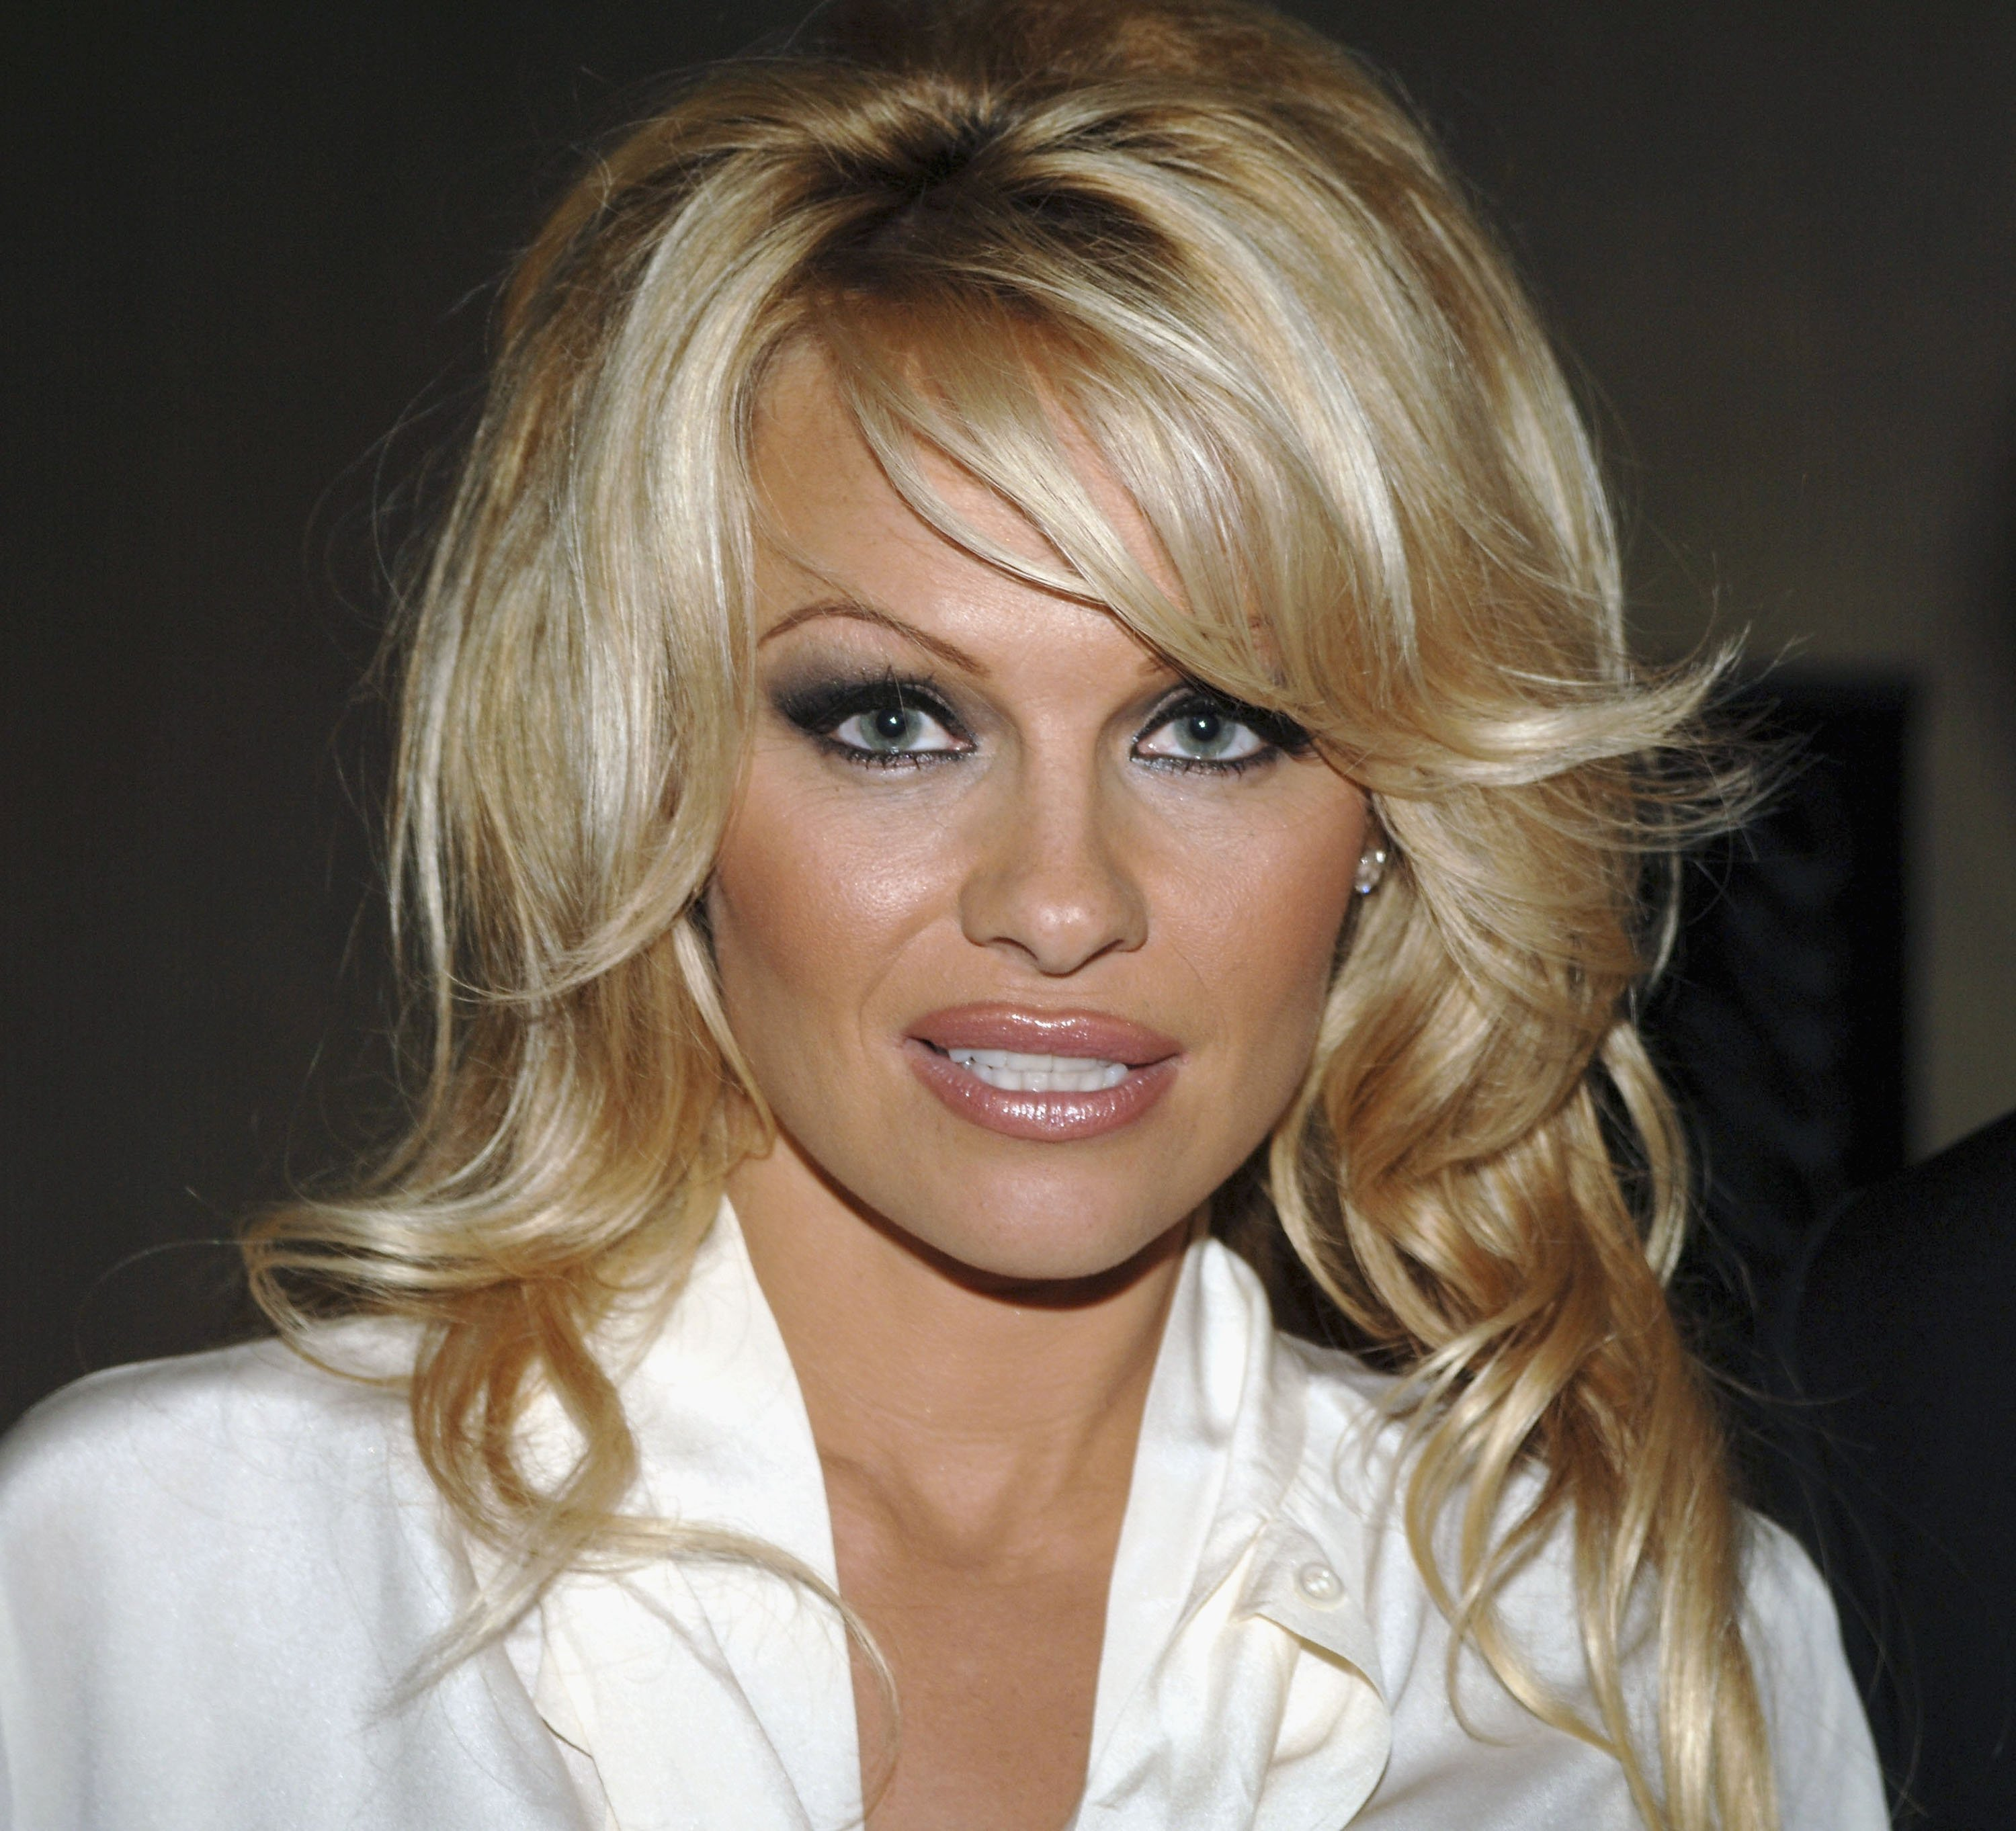 Pamela Anderson attends The Museum of Television & Radio Annual Los Angeles Gala at the Beverly Hilton Hotel on November 7, 2005, in Beverly Hills, California. | Source: Getty Images.